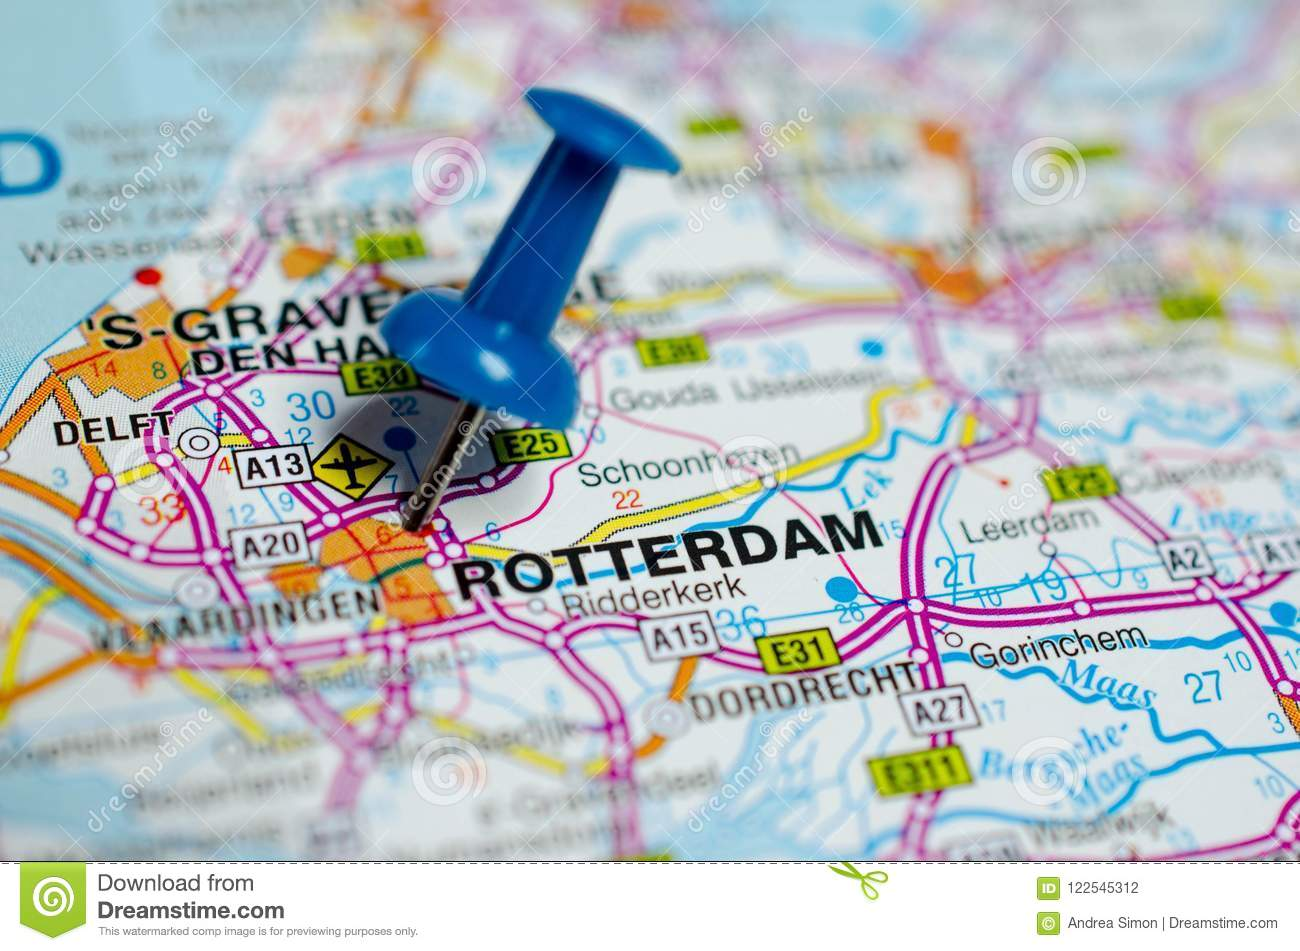 Rotterdam on map stock photo. Image of netherlands, travel ...